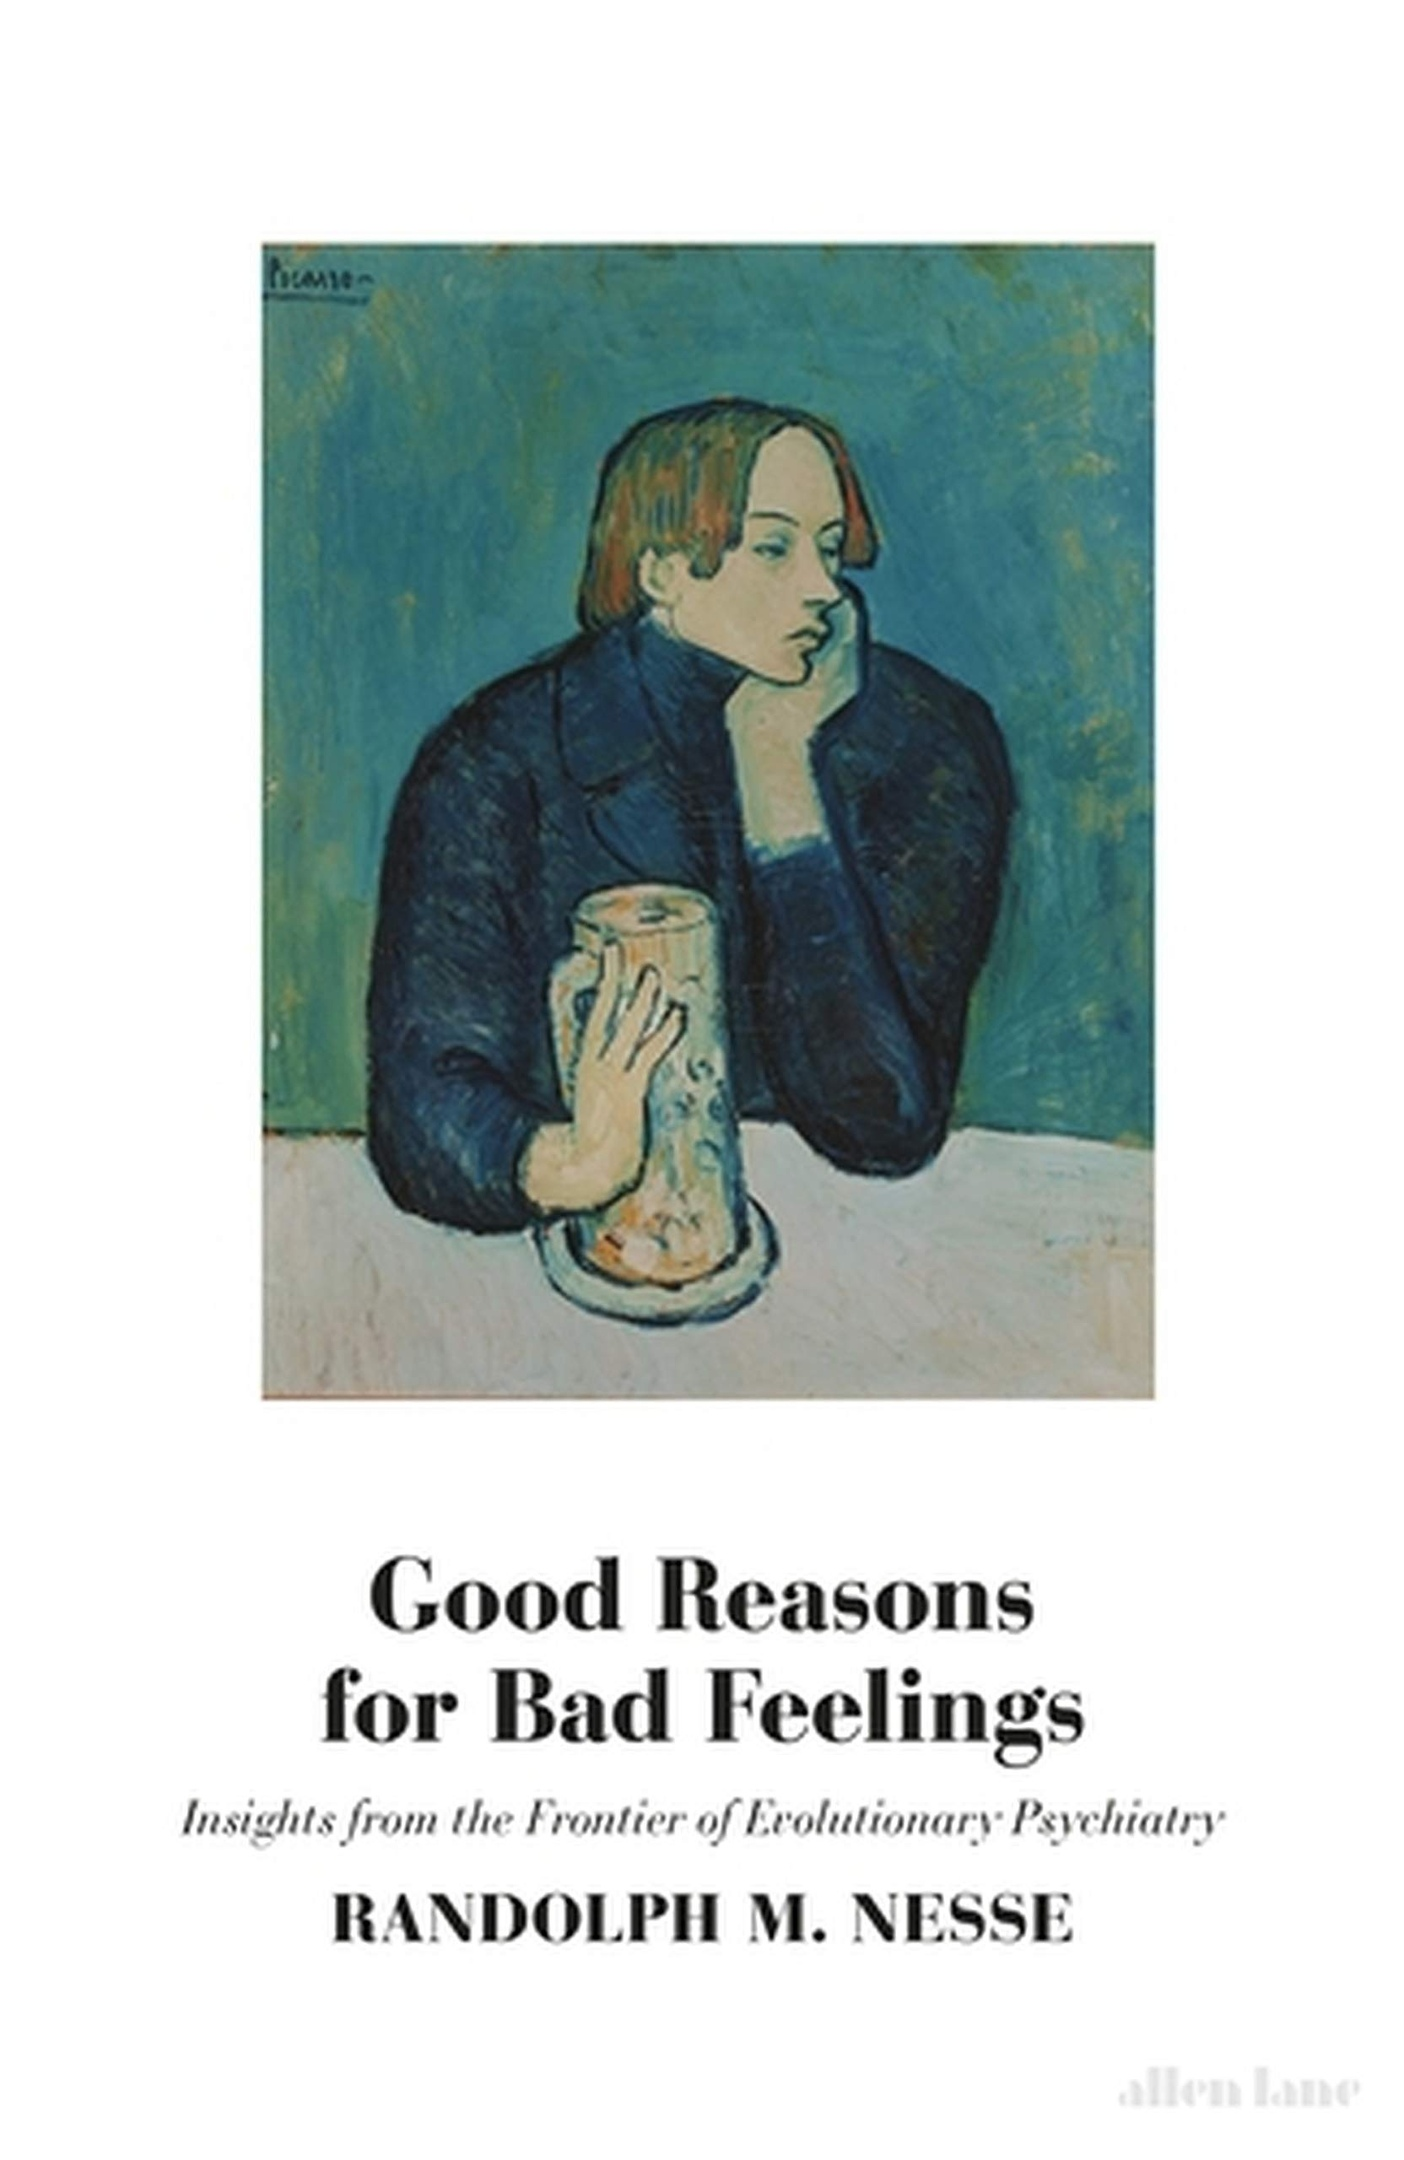 Randolph M. Nesse – Good Reasons For